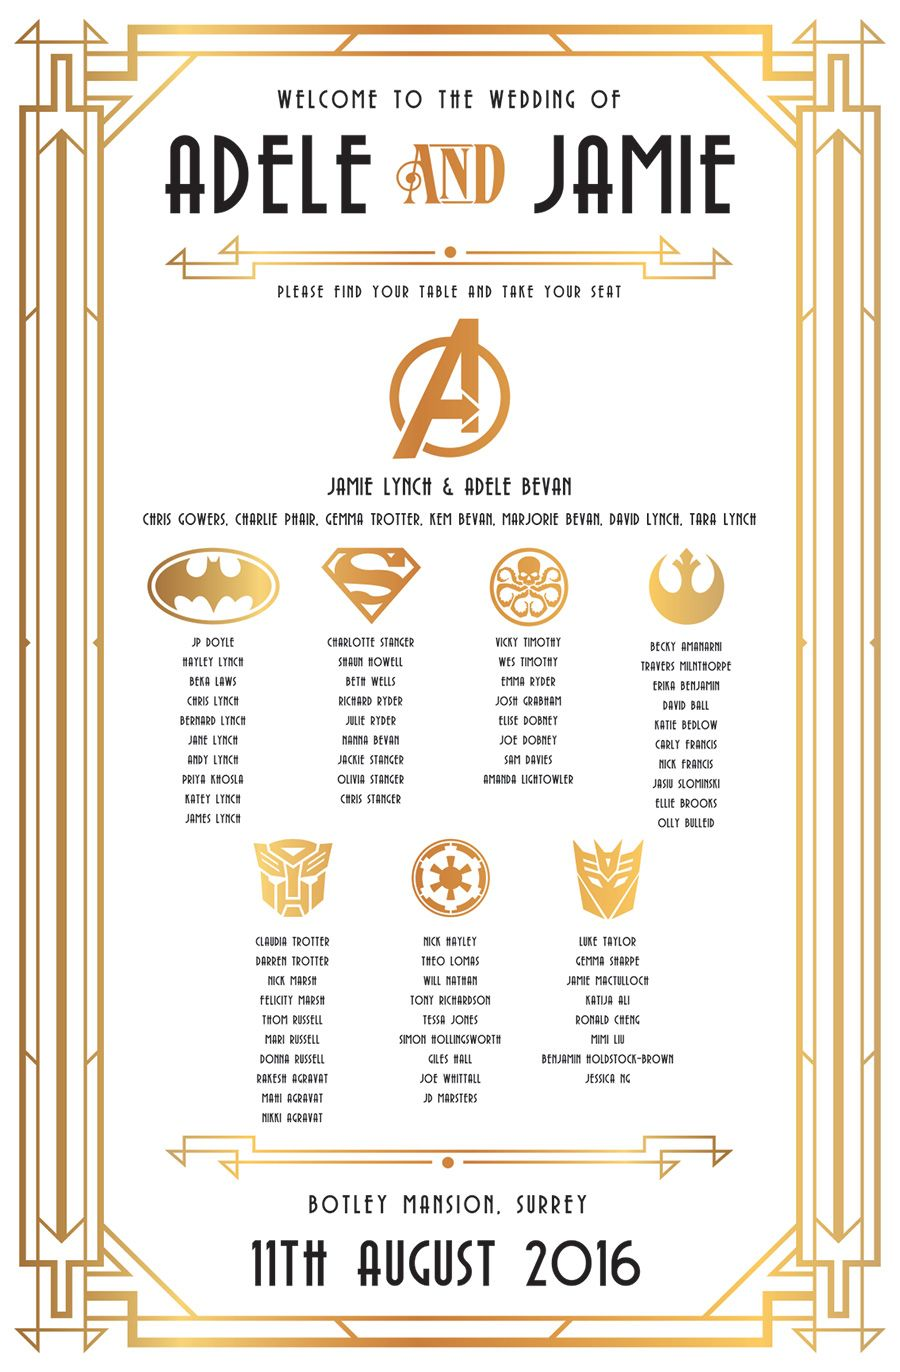 gatsby superhero wedding table seating plan http://www.wedfest.co ...